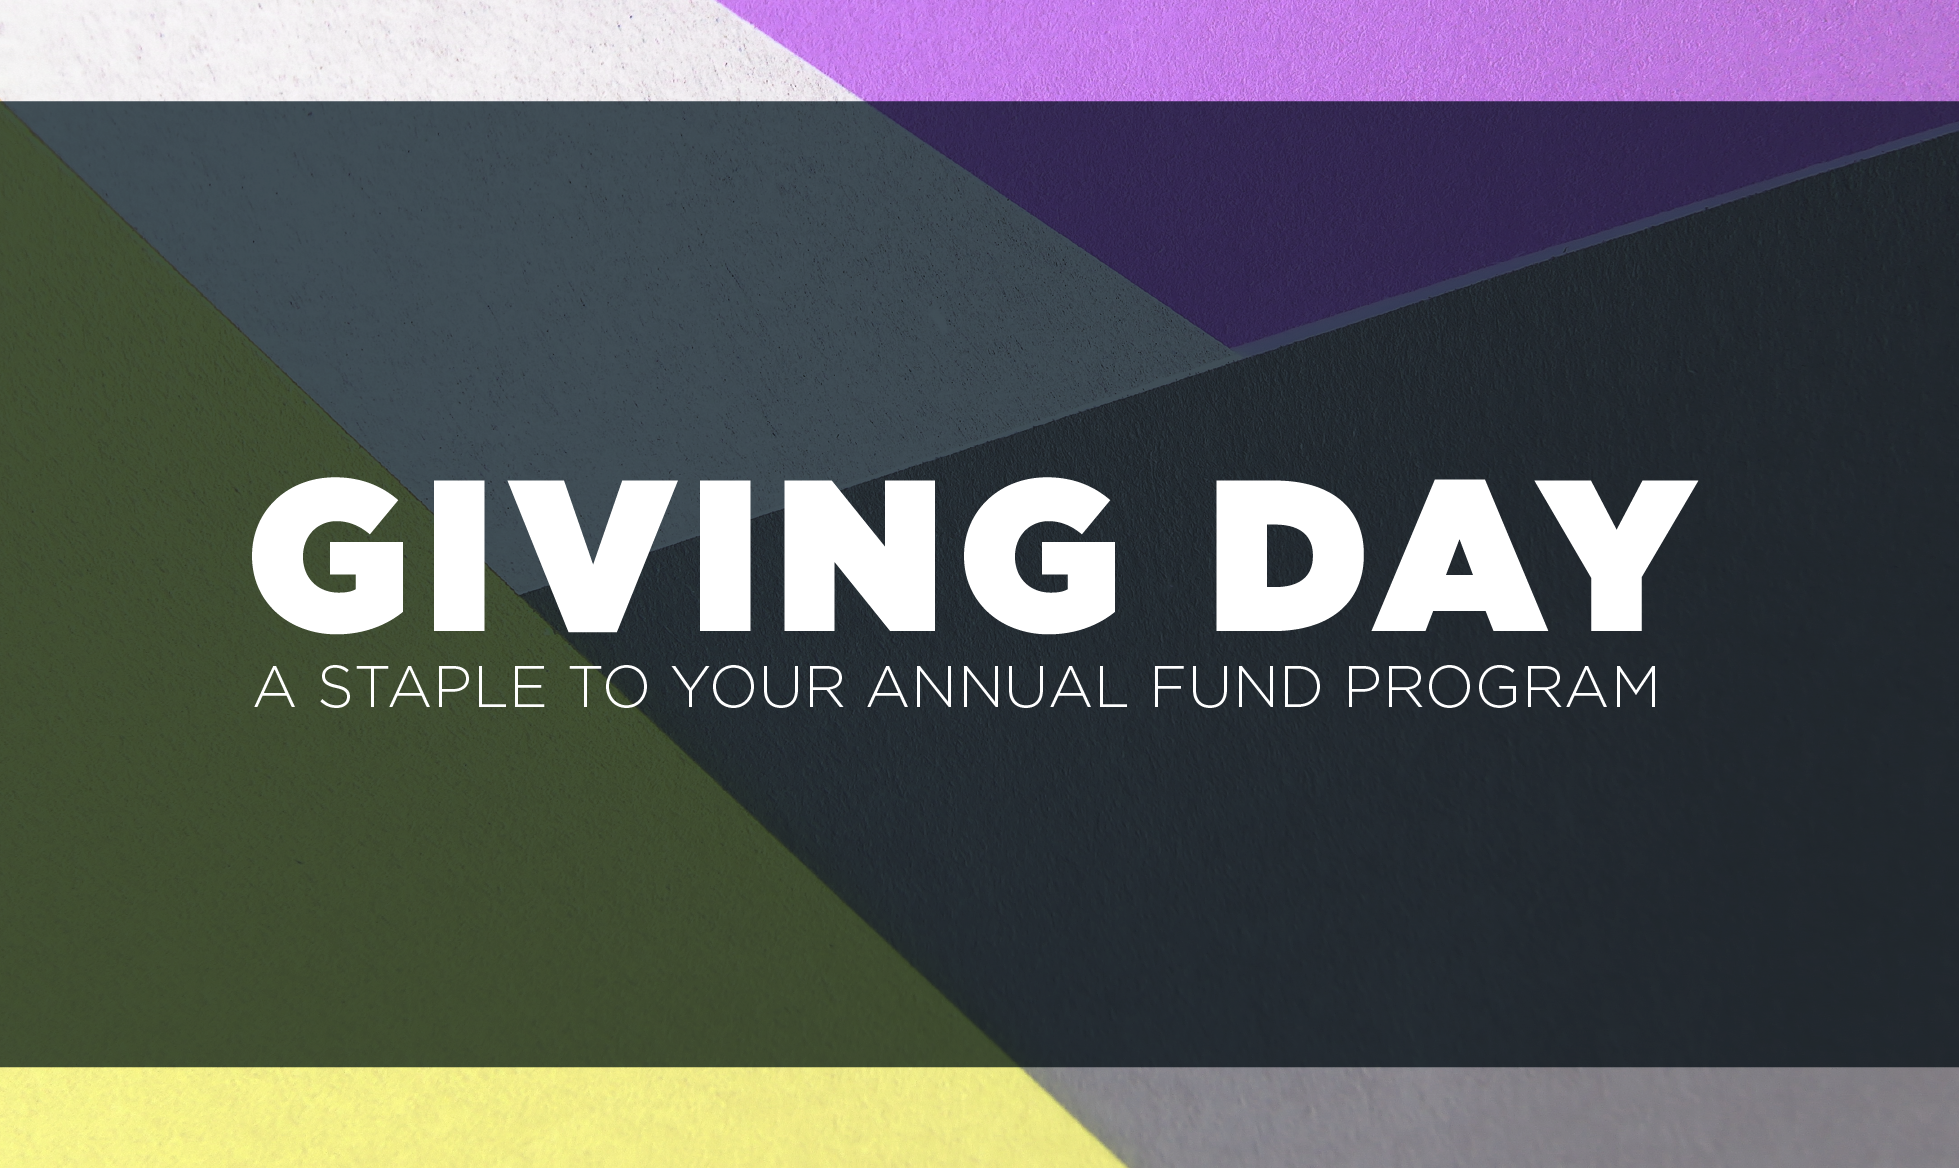 Giving Day: A Staple to Your Annual Fund Program